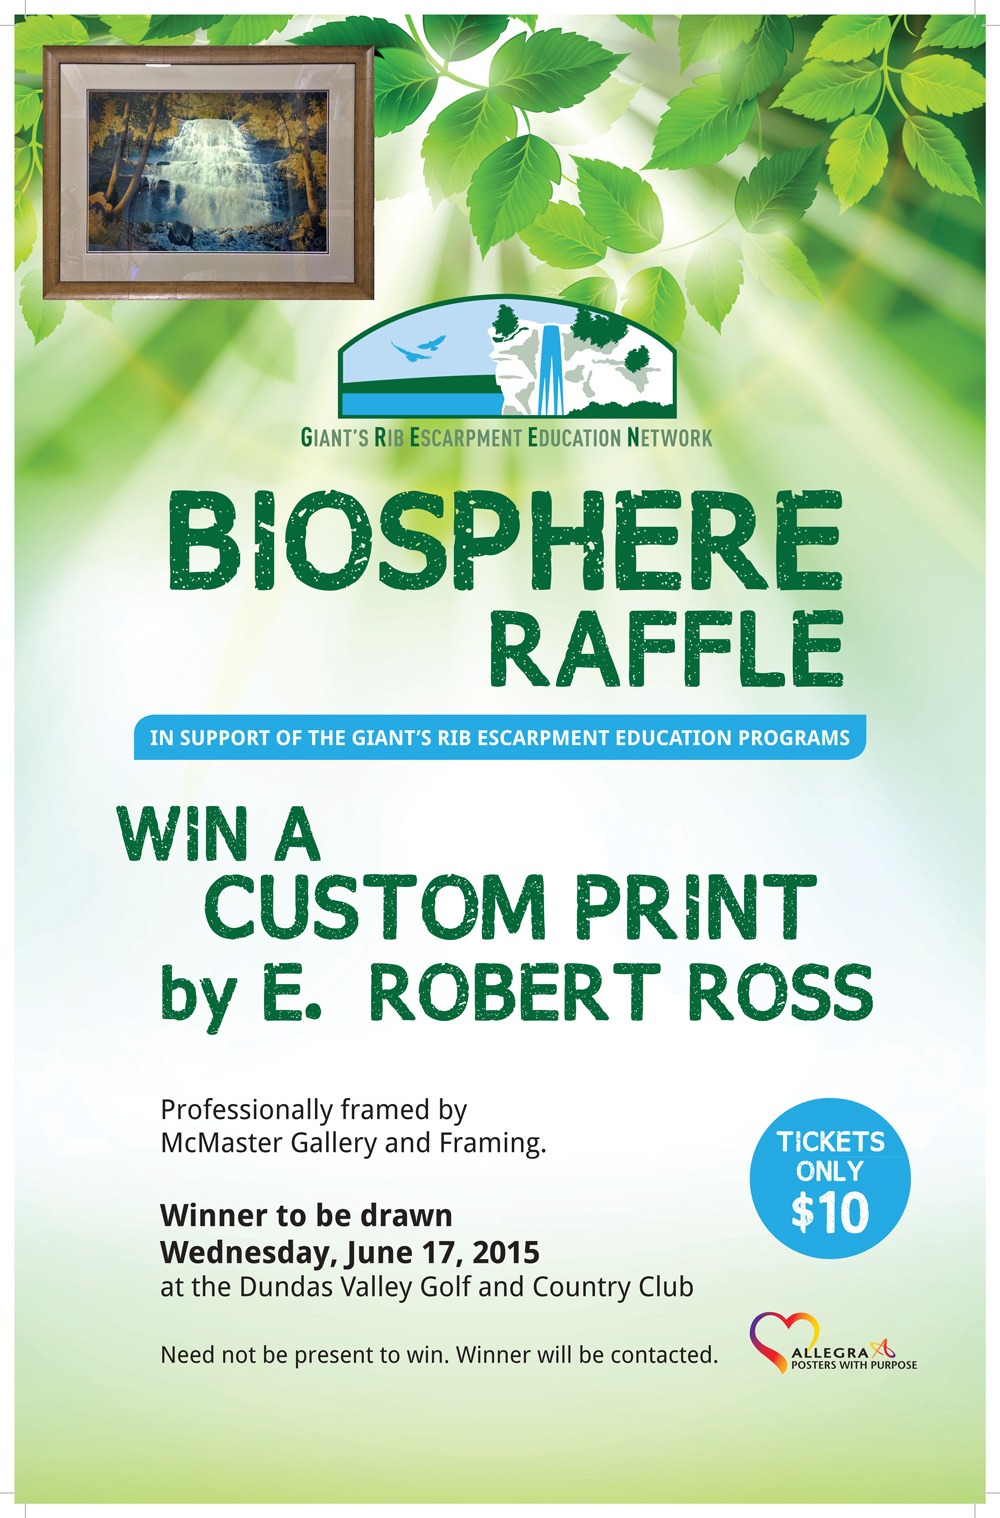 e robert ross framed print could be yours telling the story of raffle poster e robert ross web